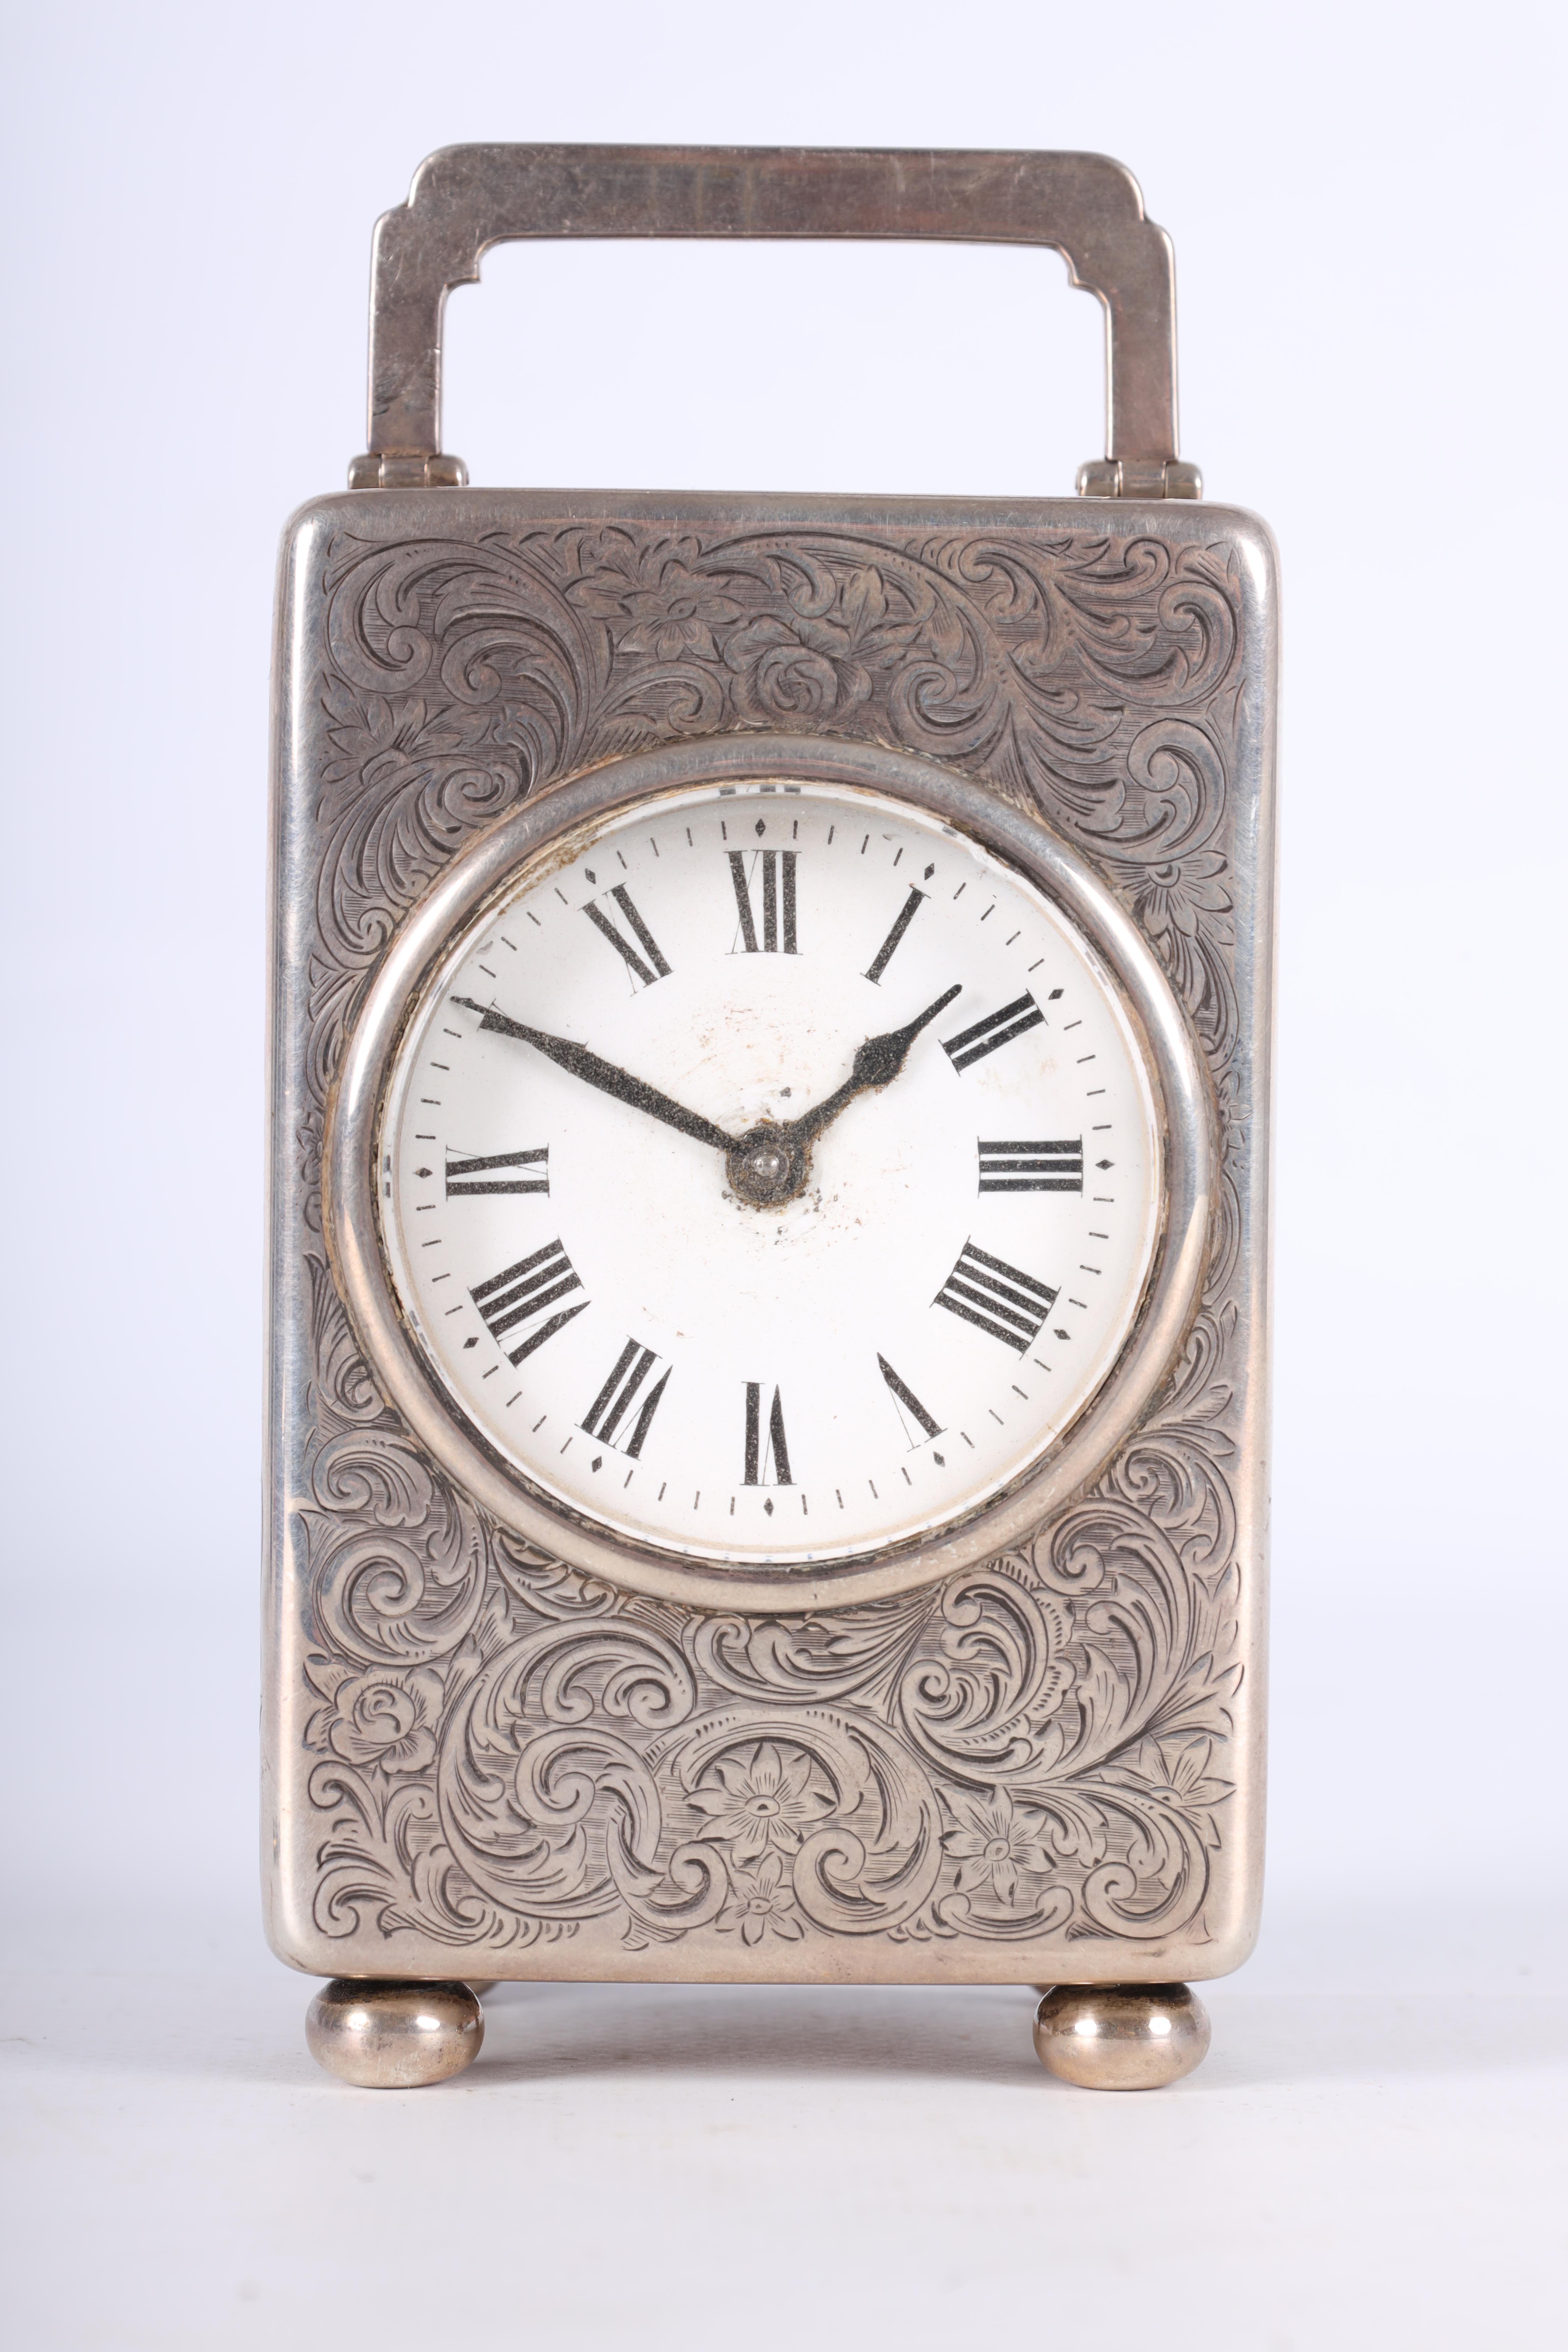 A LARGE EARLY 20TH CENTURY SILVER CASED CARRIAGE CLOCK the case covered with scrolling foliated - Image 3 of 10